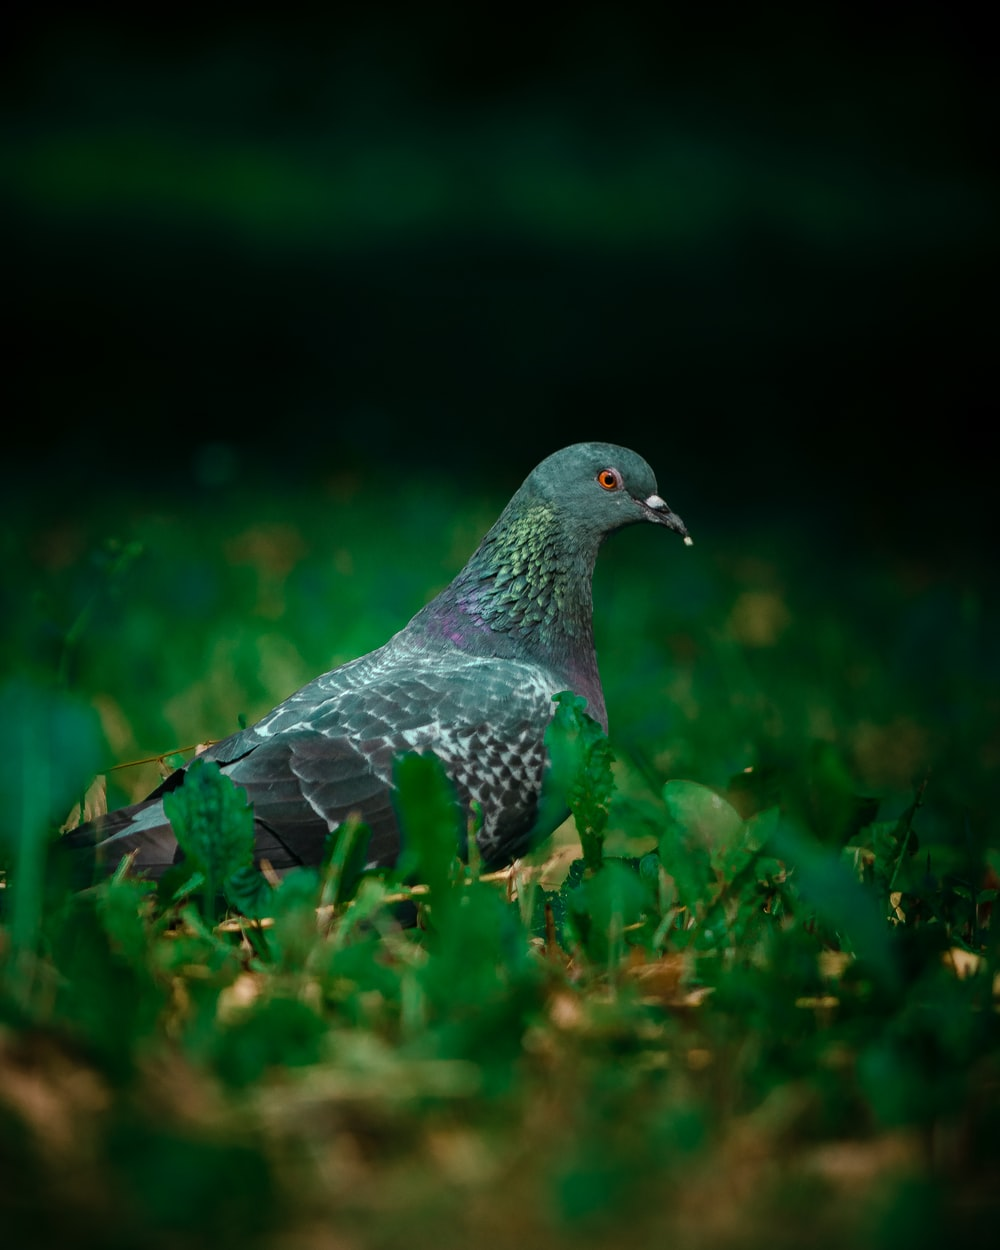 grey and black pigeon on green grass during daytime